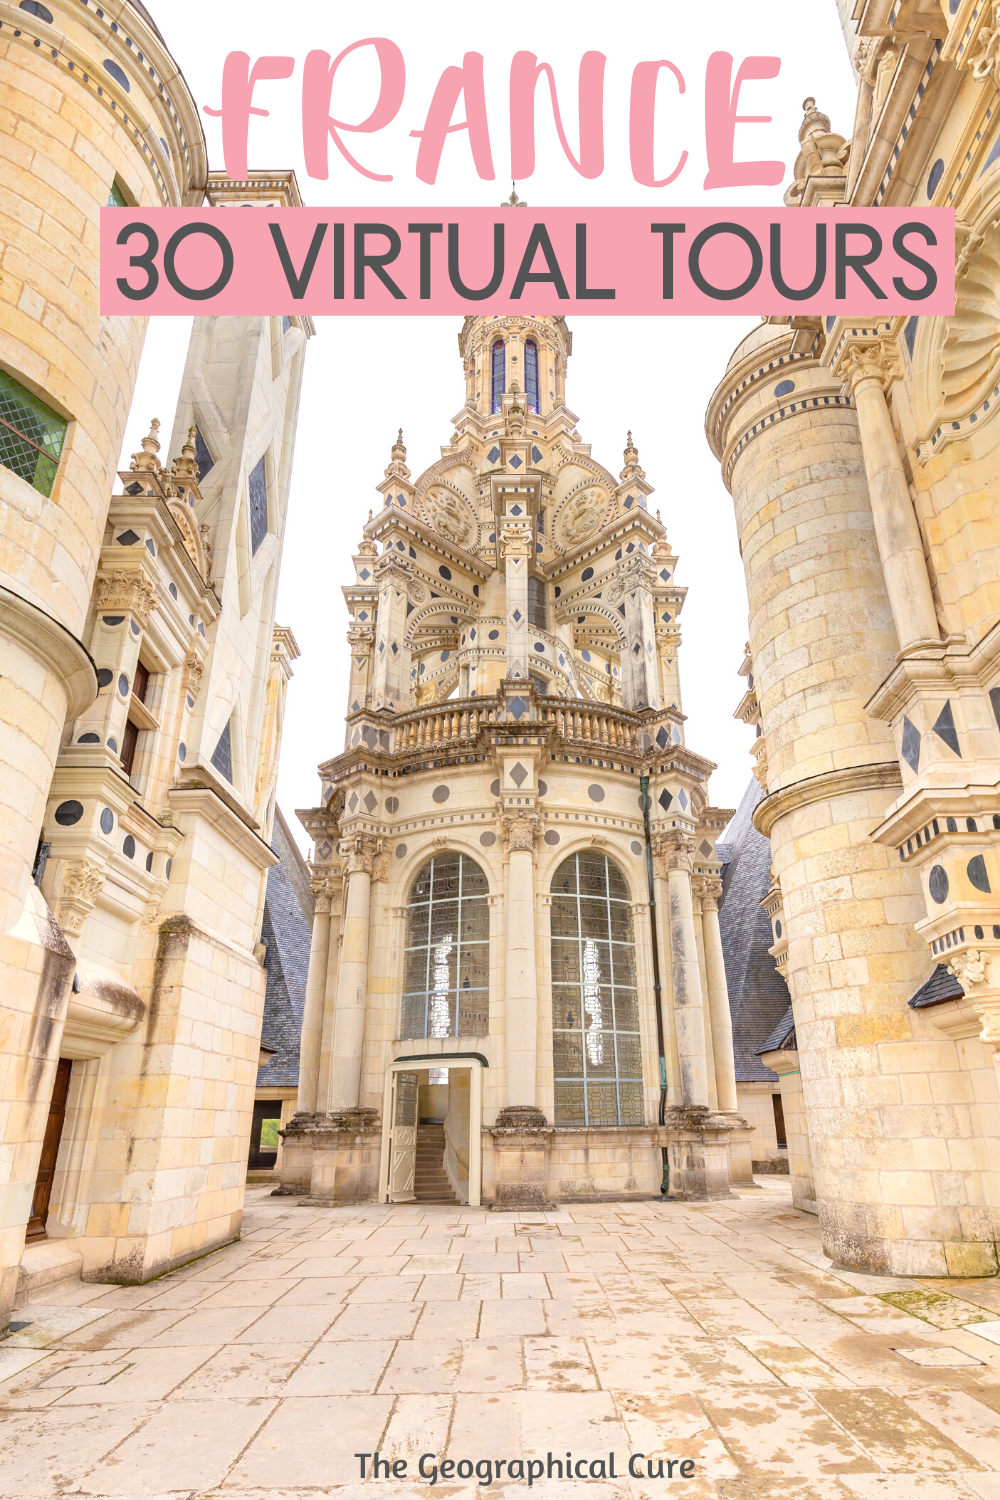 France From Home: 30 Virtual Tours